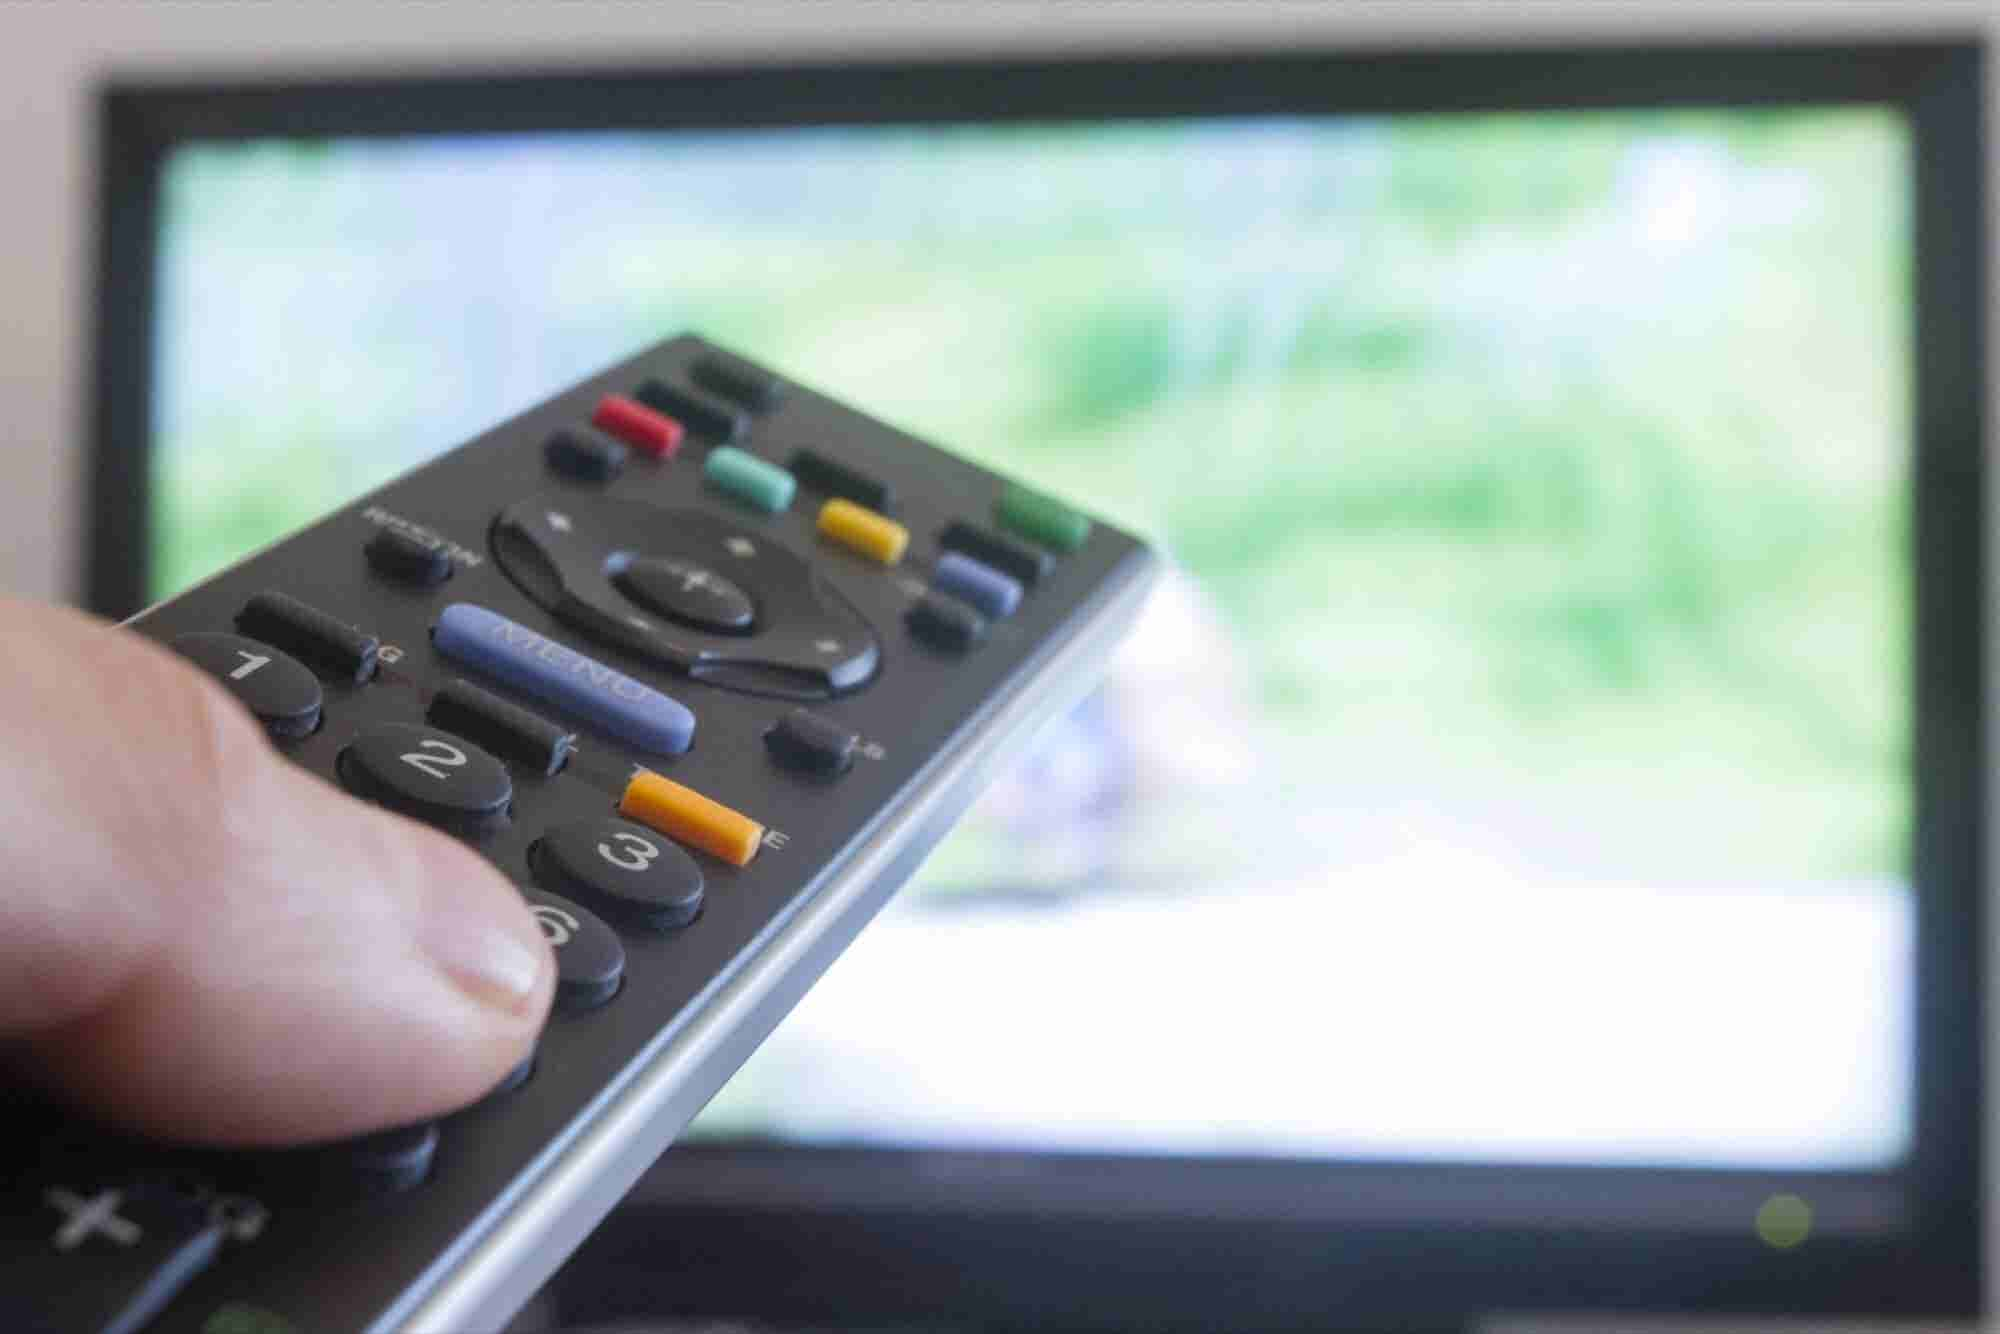 Is Connected TV Experience A Part Of Your Digital Strategy?